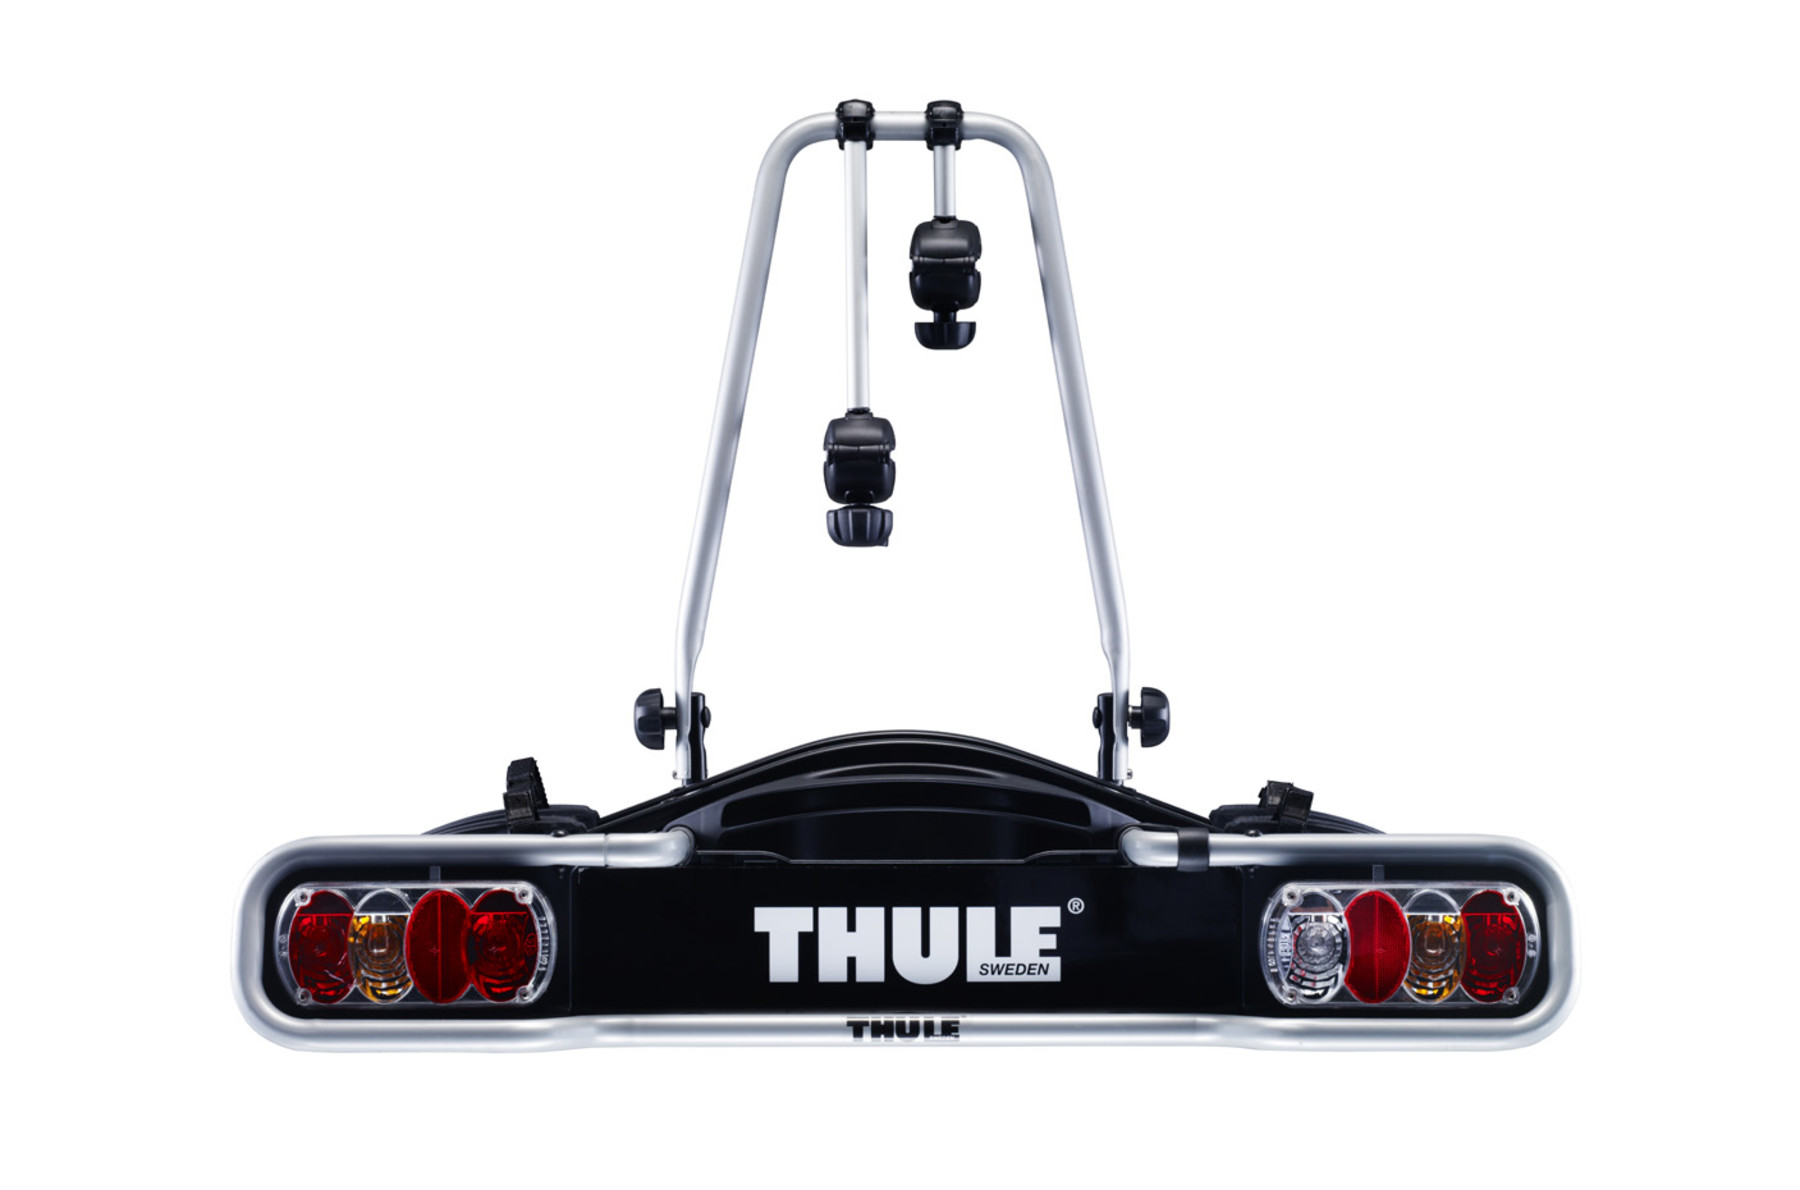 Thule 7-Pin to 13-Pin Car Electrical Outlet Adaptor 9906 Convert 7 to 13 Pin